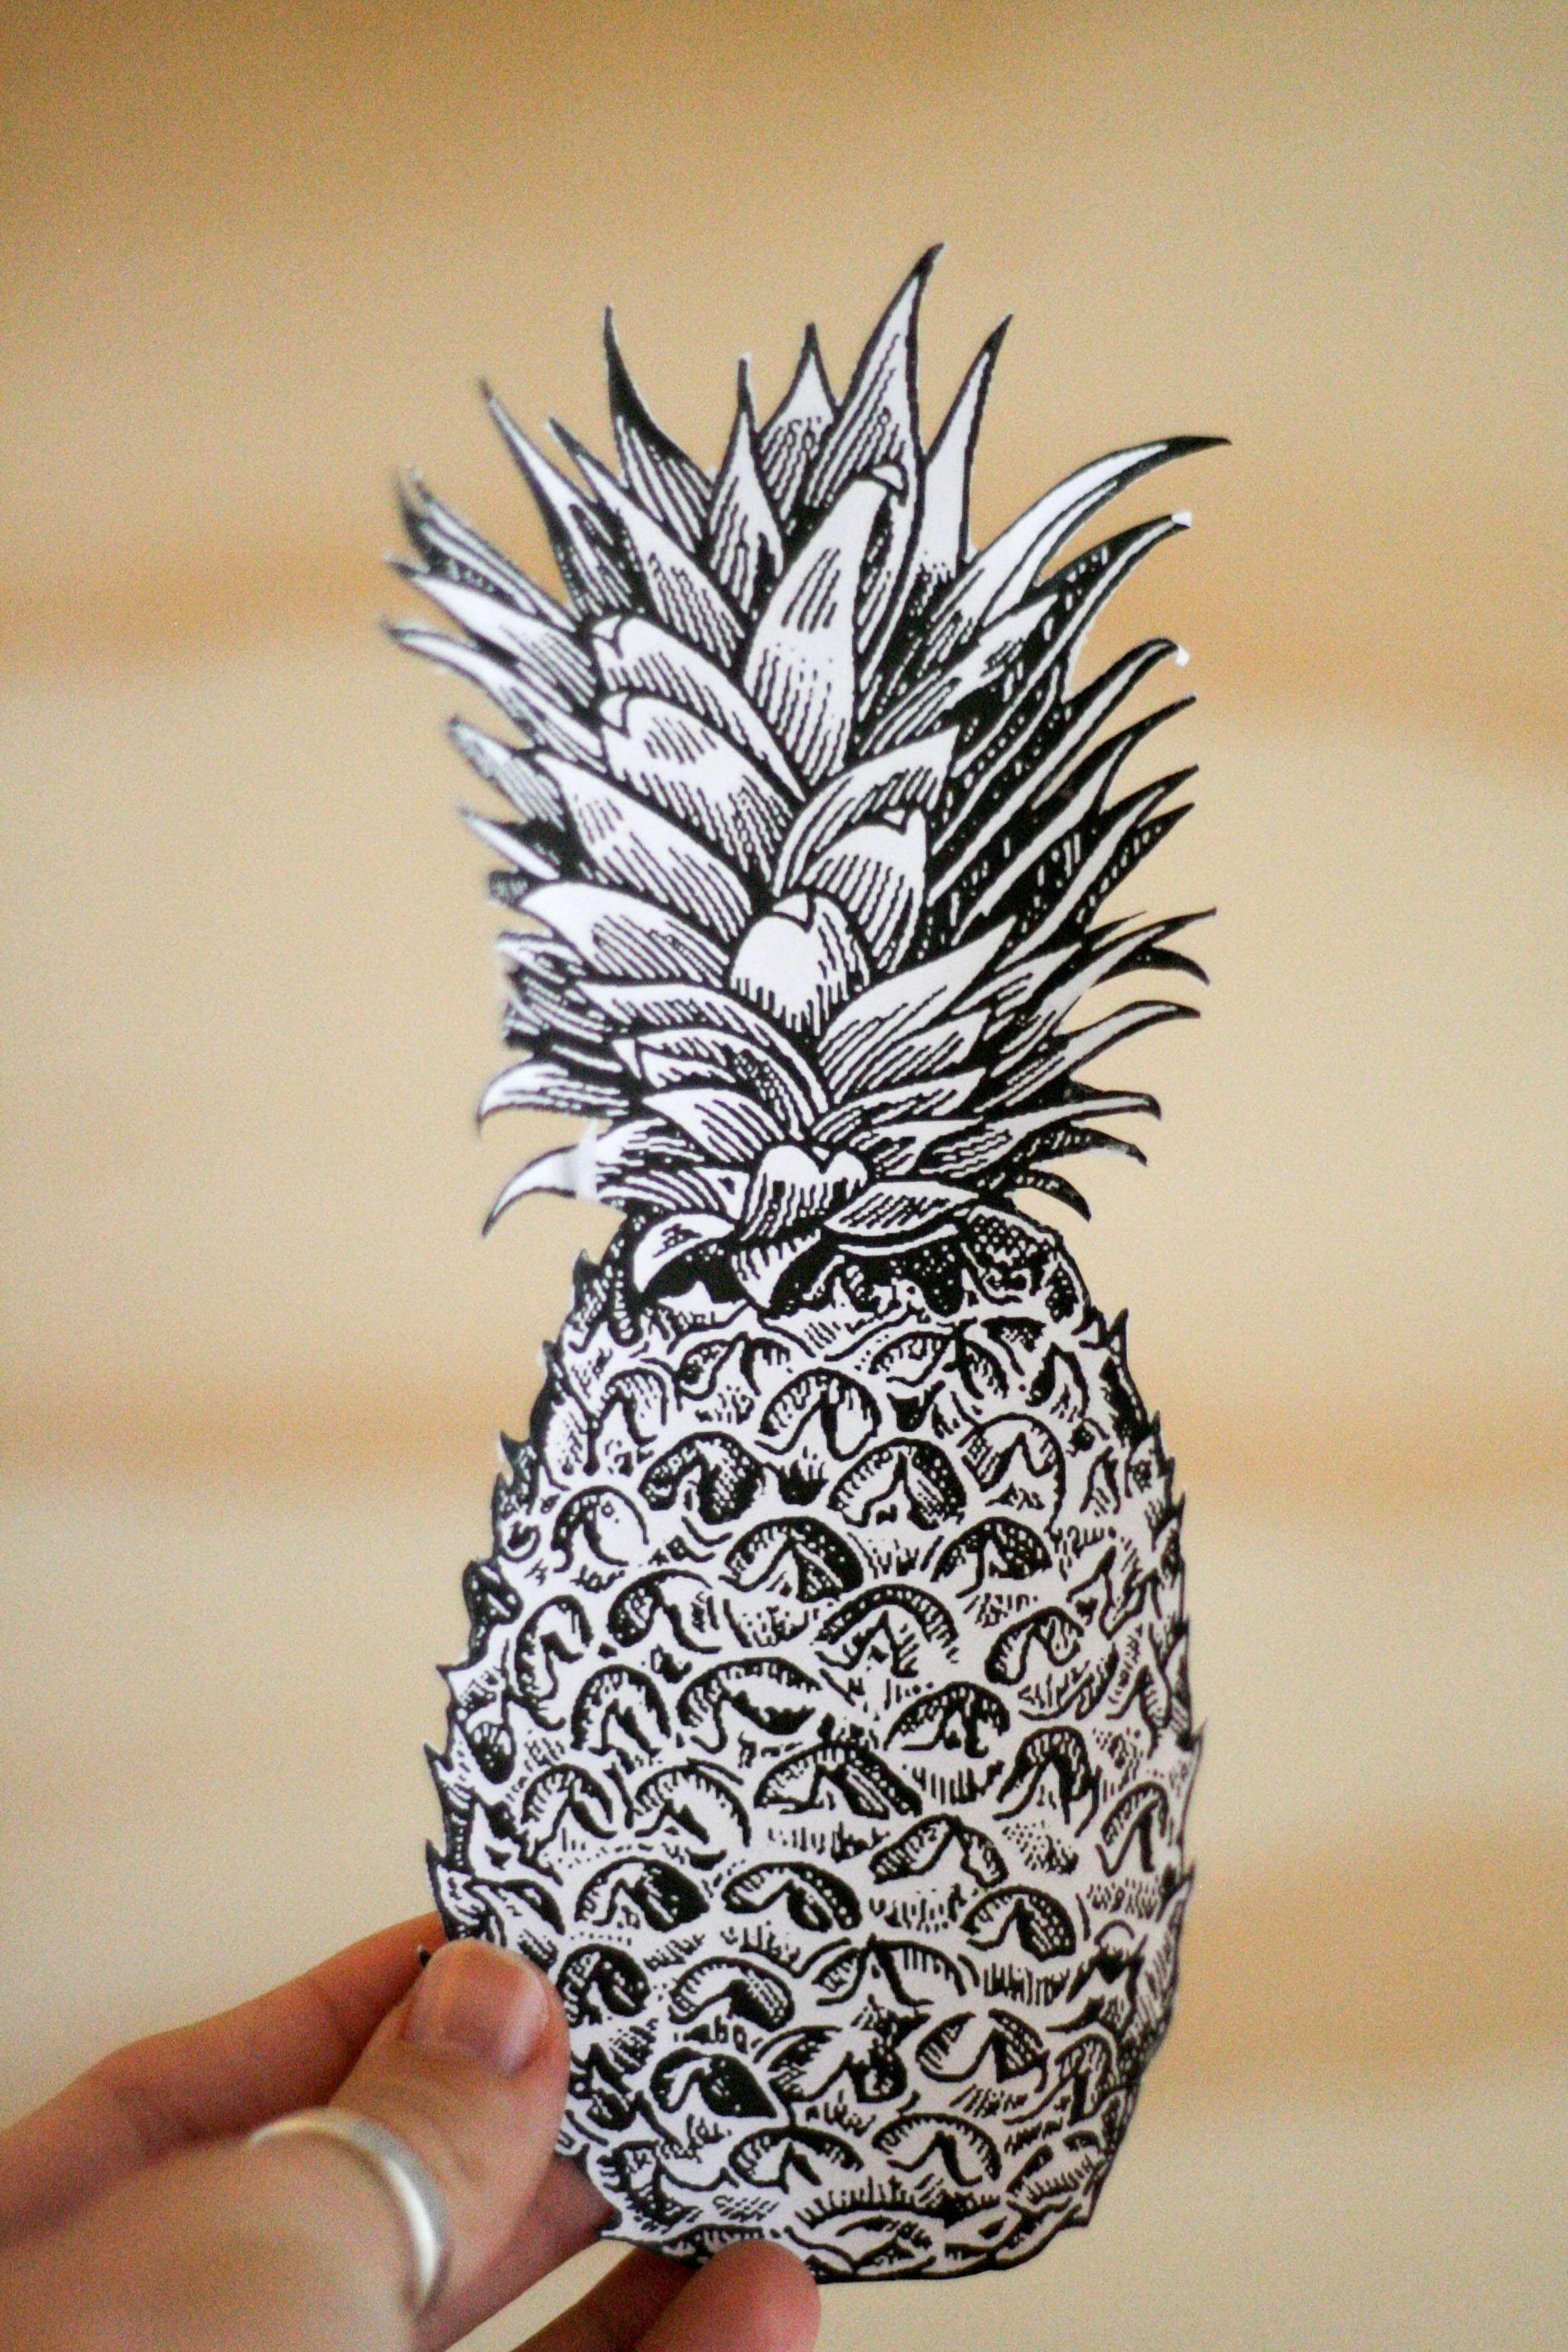 It's just a photo of Unforgettable Pineapple Stencil Printable